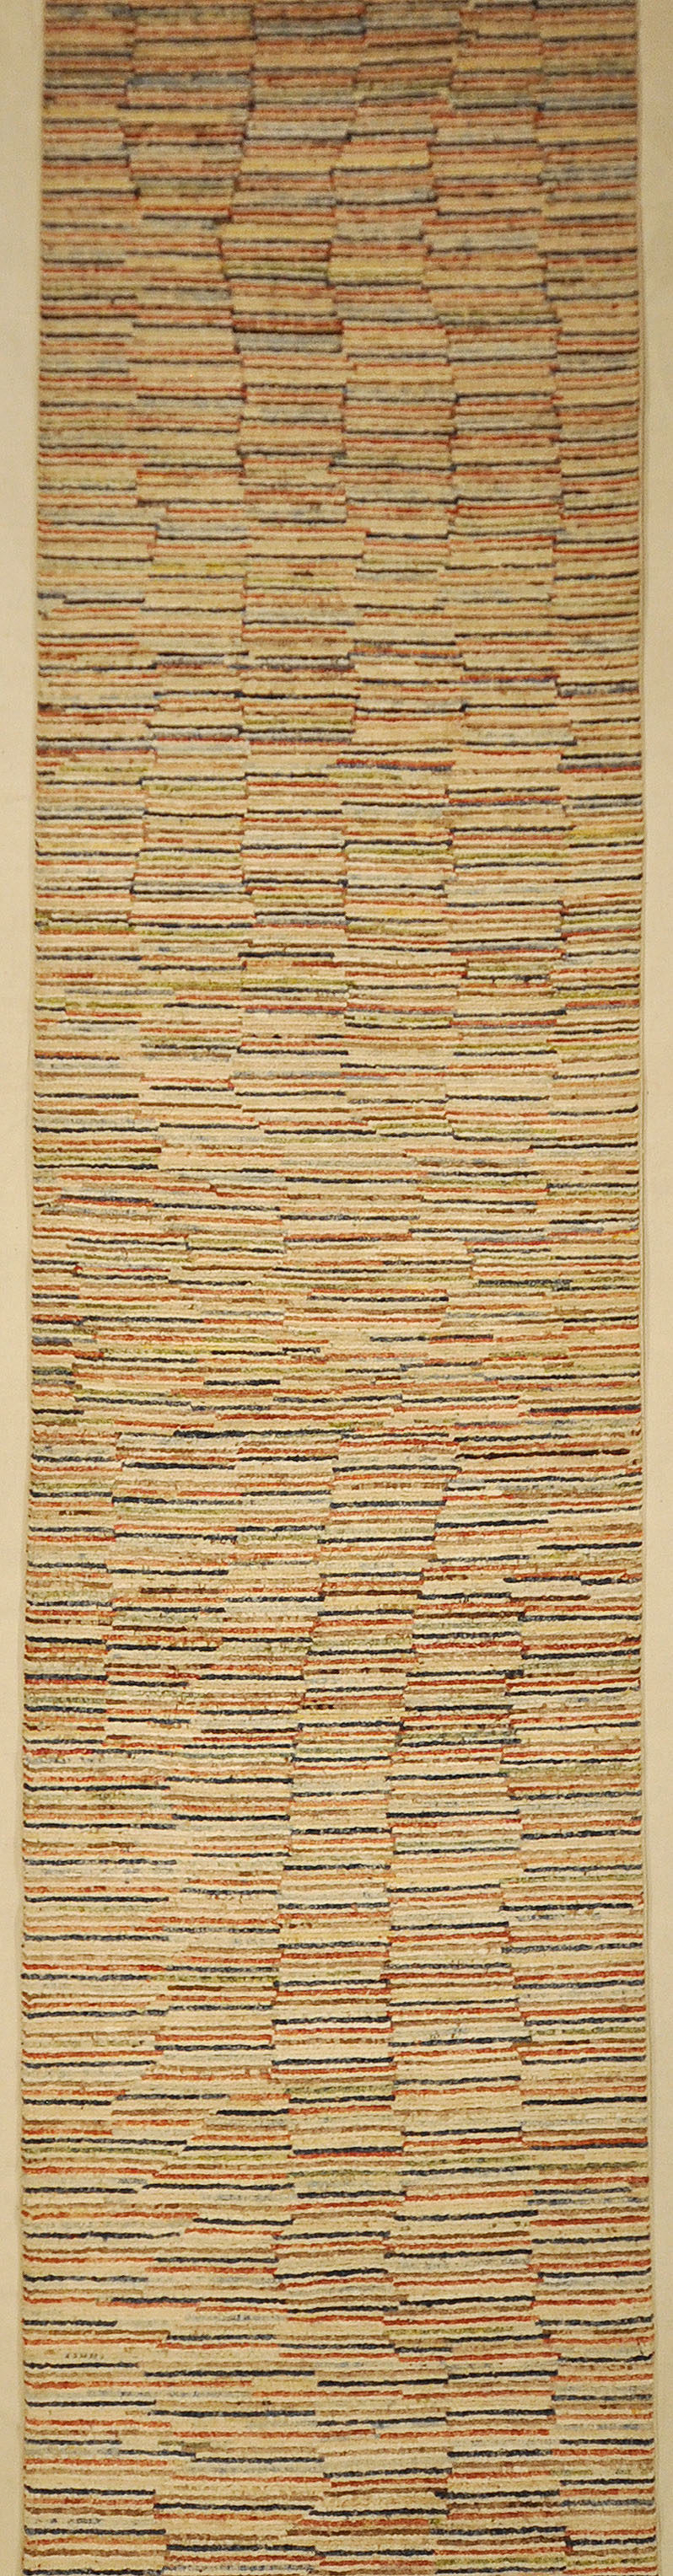 Leesa Modern Organic Stripes Runner Rug. Ziegler and Company in collaboration with designer Leesa Wilson Goldmuntz in Santa Barbara, California.